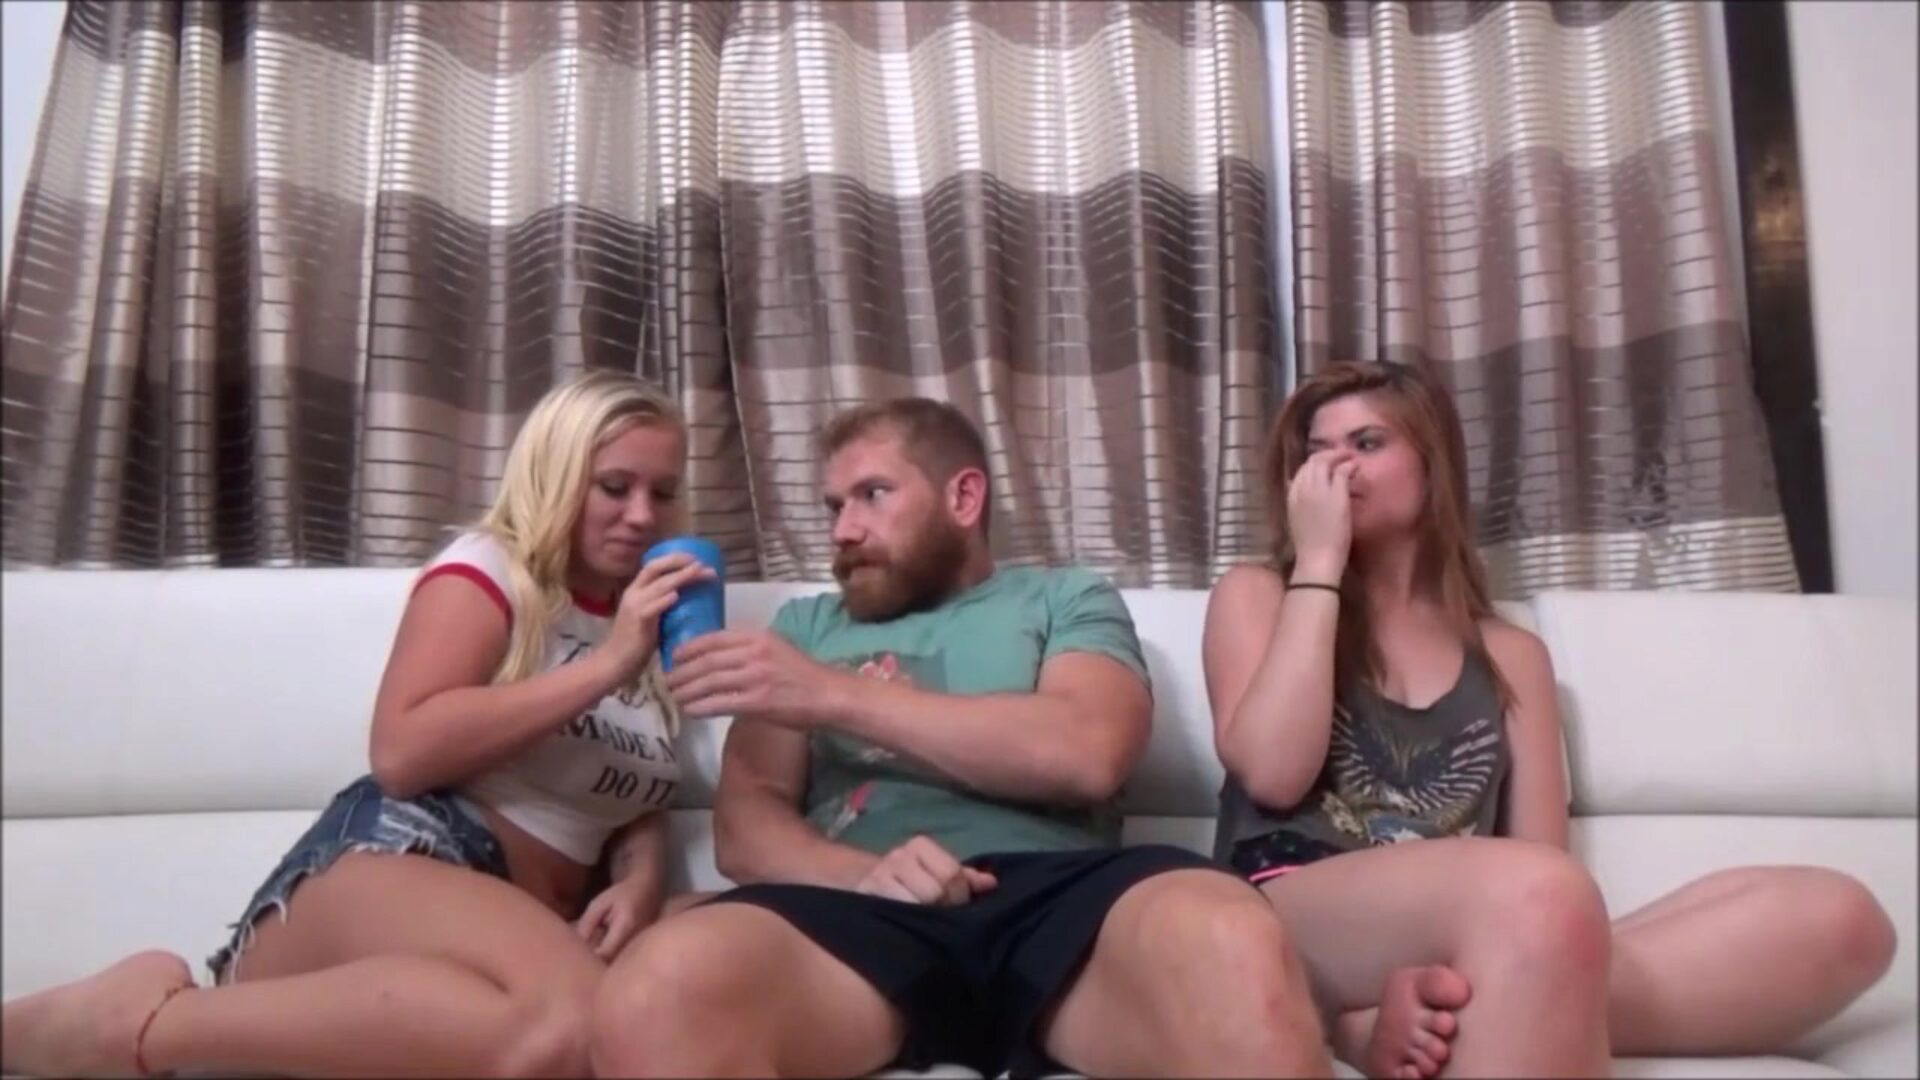 Brother Fucks Sister & Cousin at Family Reunion - Bailey Brooke & Hunter Rose - Family Therapy - Preview